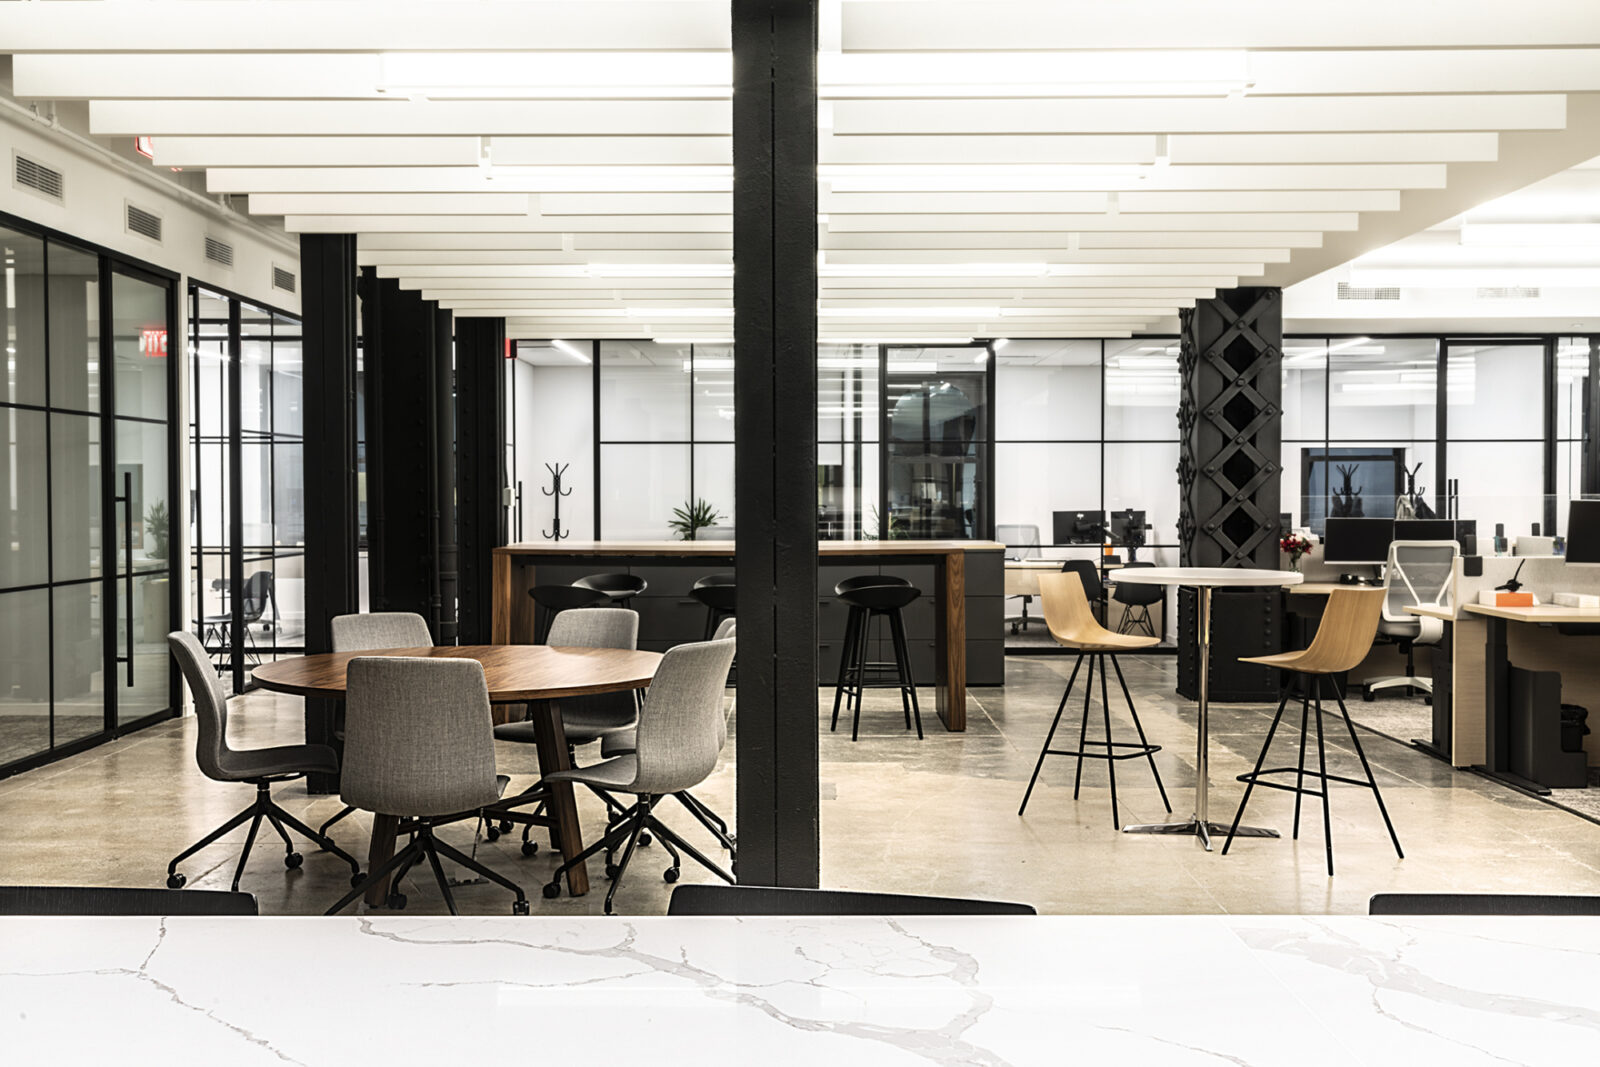 New York City Office Real Estate Client Meeting Cafe Area Breakout Collaboration in Open Plan Office